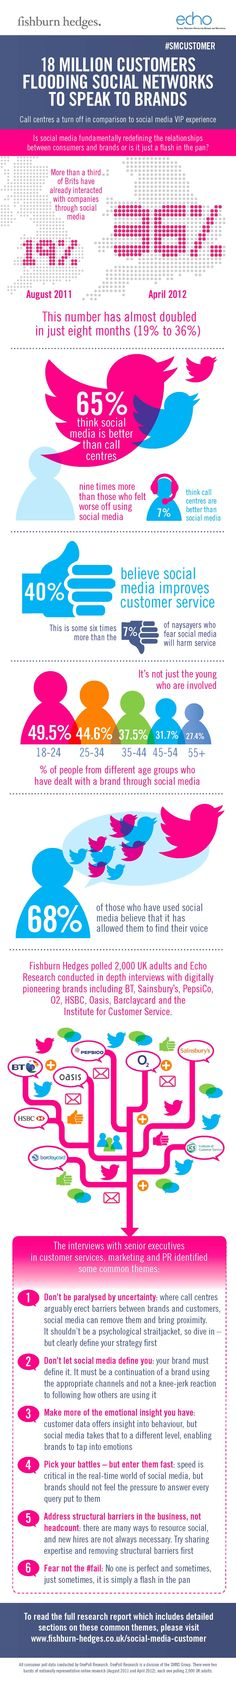 It's not just Gen Y using social media. All ages are using social channels to speak to brands. #socialmedia #custserv #customerservice